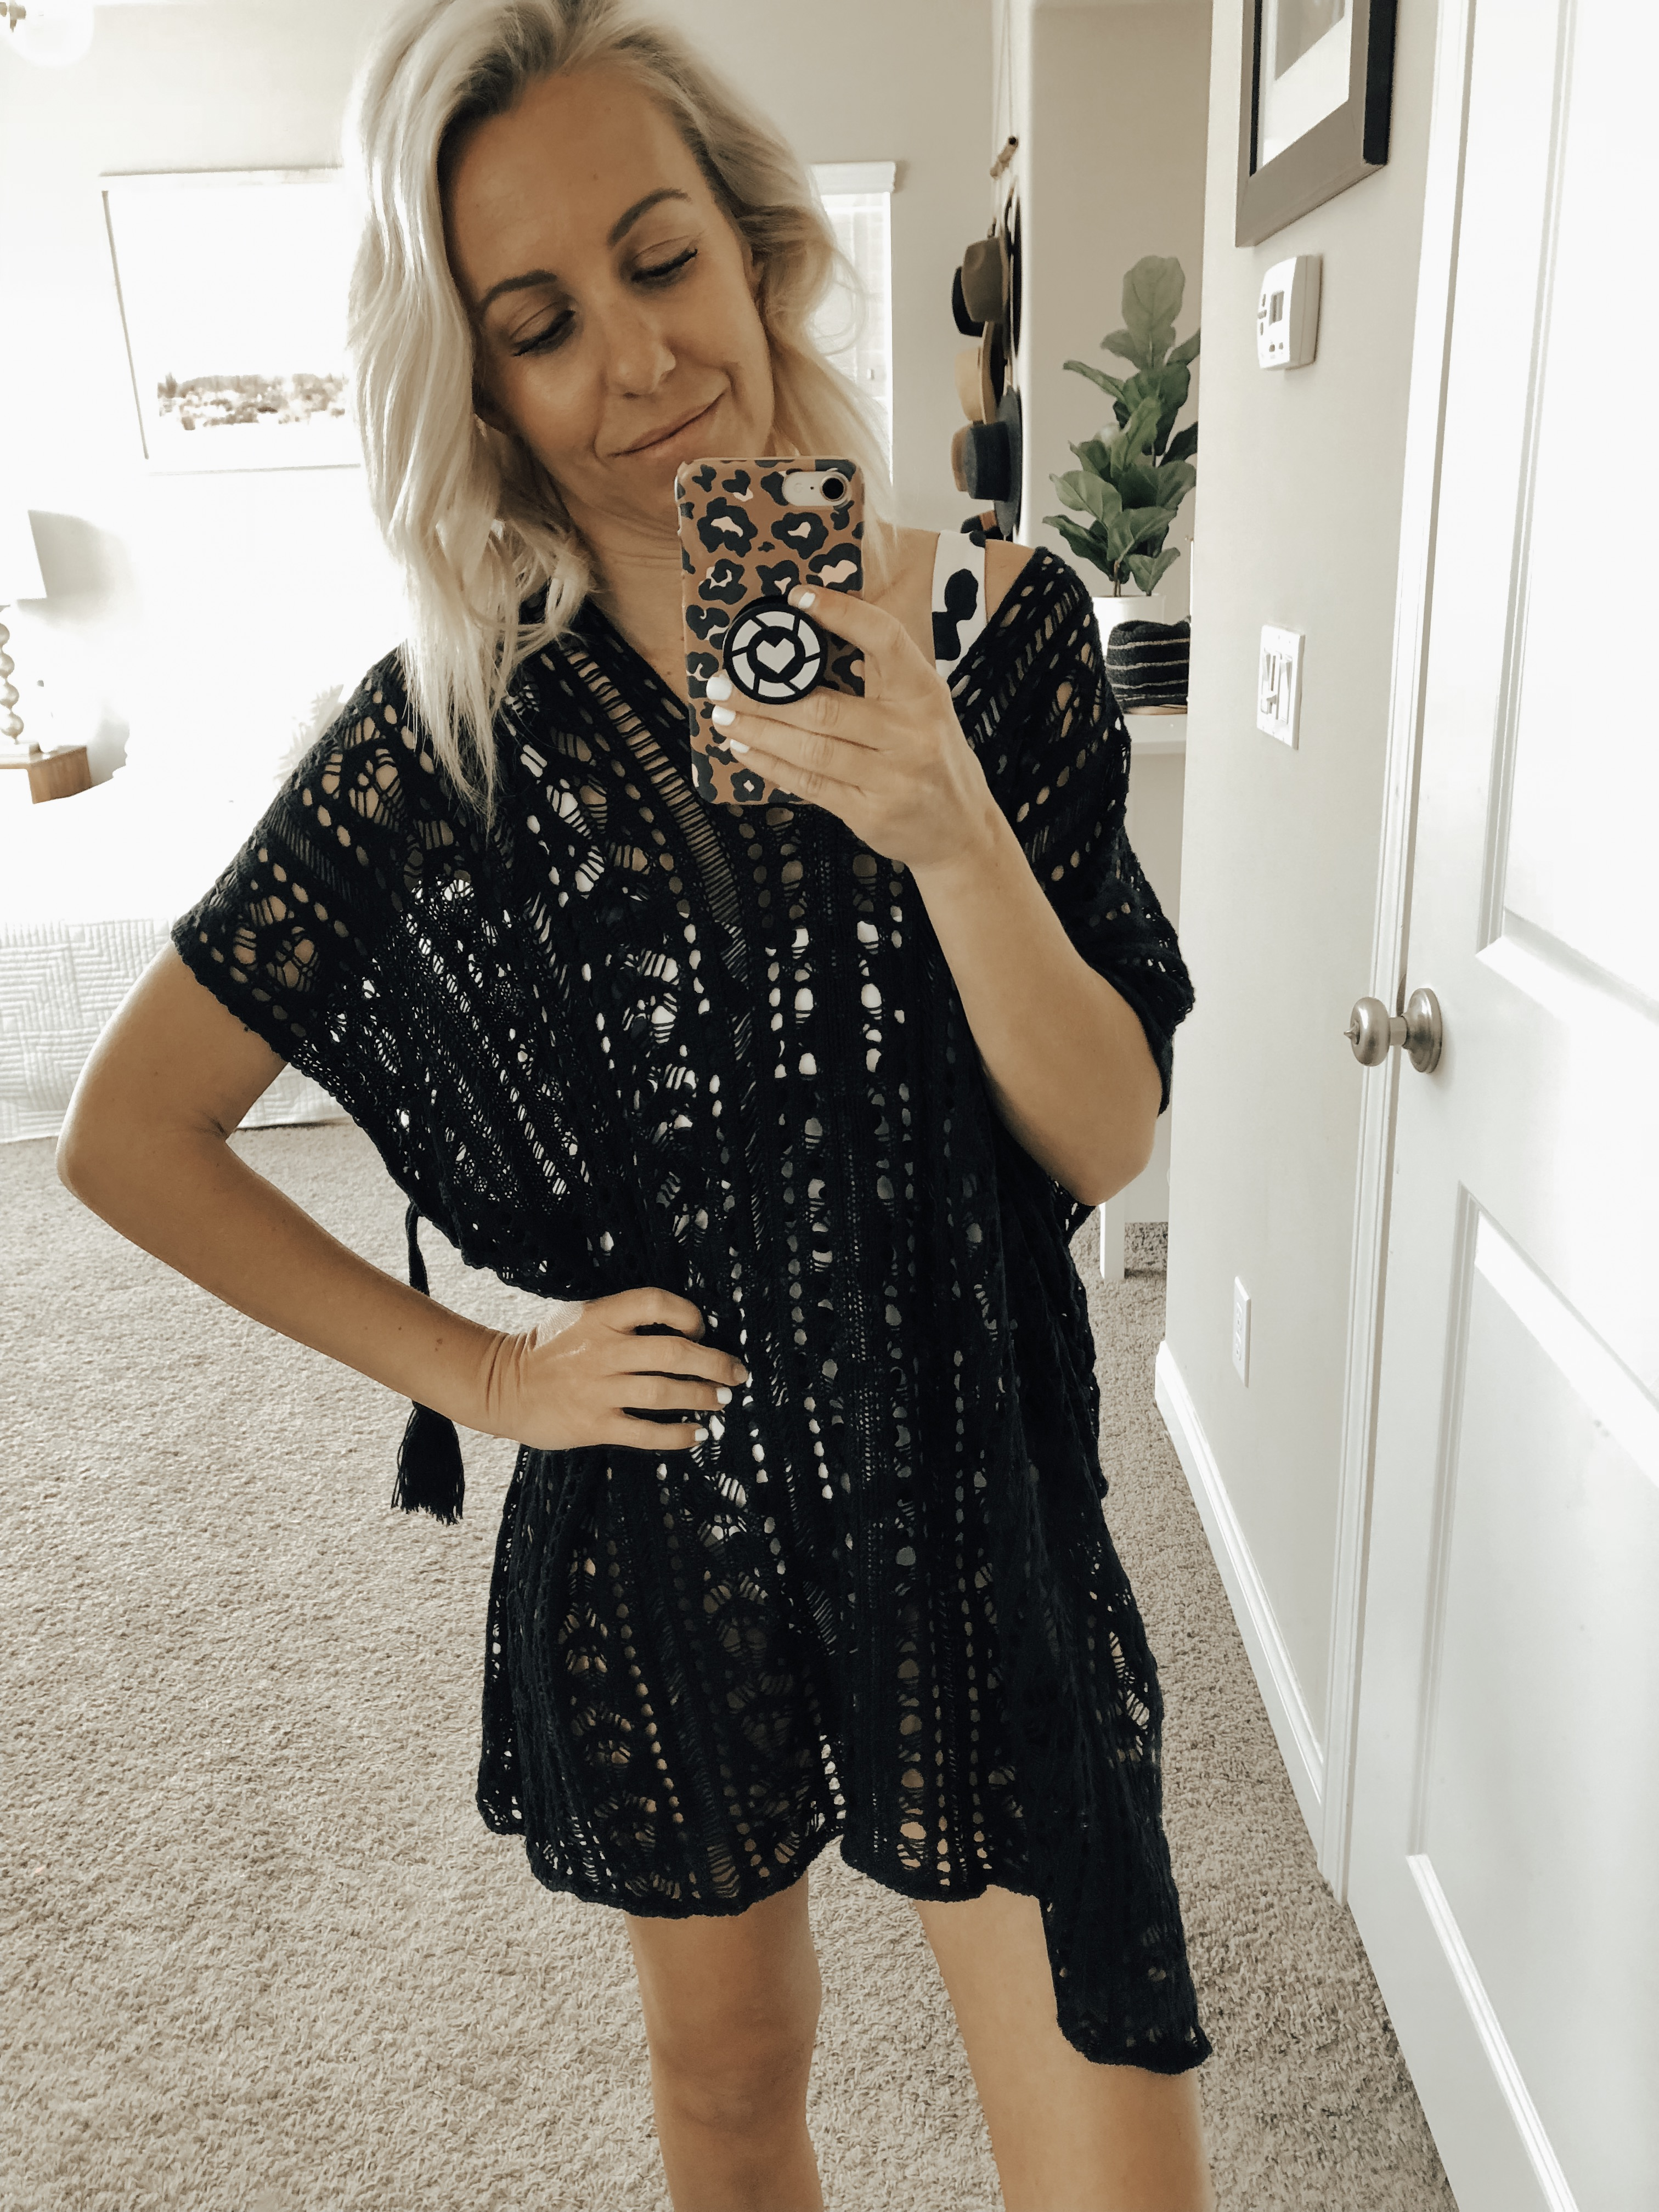 MARCH TOP 10- Jaclyn De Leon Style + My top ten selling items from the month of March are everything from the coziest jumpsuit, jewelry travel case, swim suit cover up, espadrilles and of course the cutest crochet cover up. Most of the favorites were from Target, Amazon, DSW and Abercrombie!